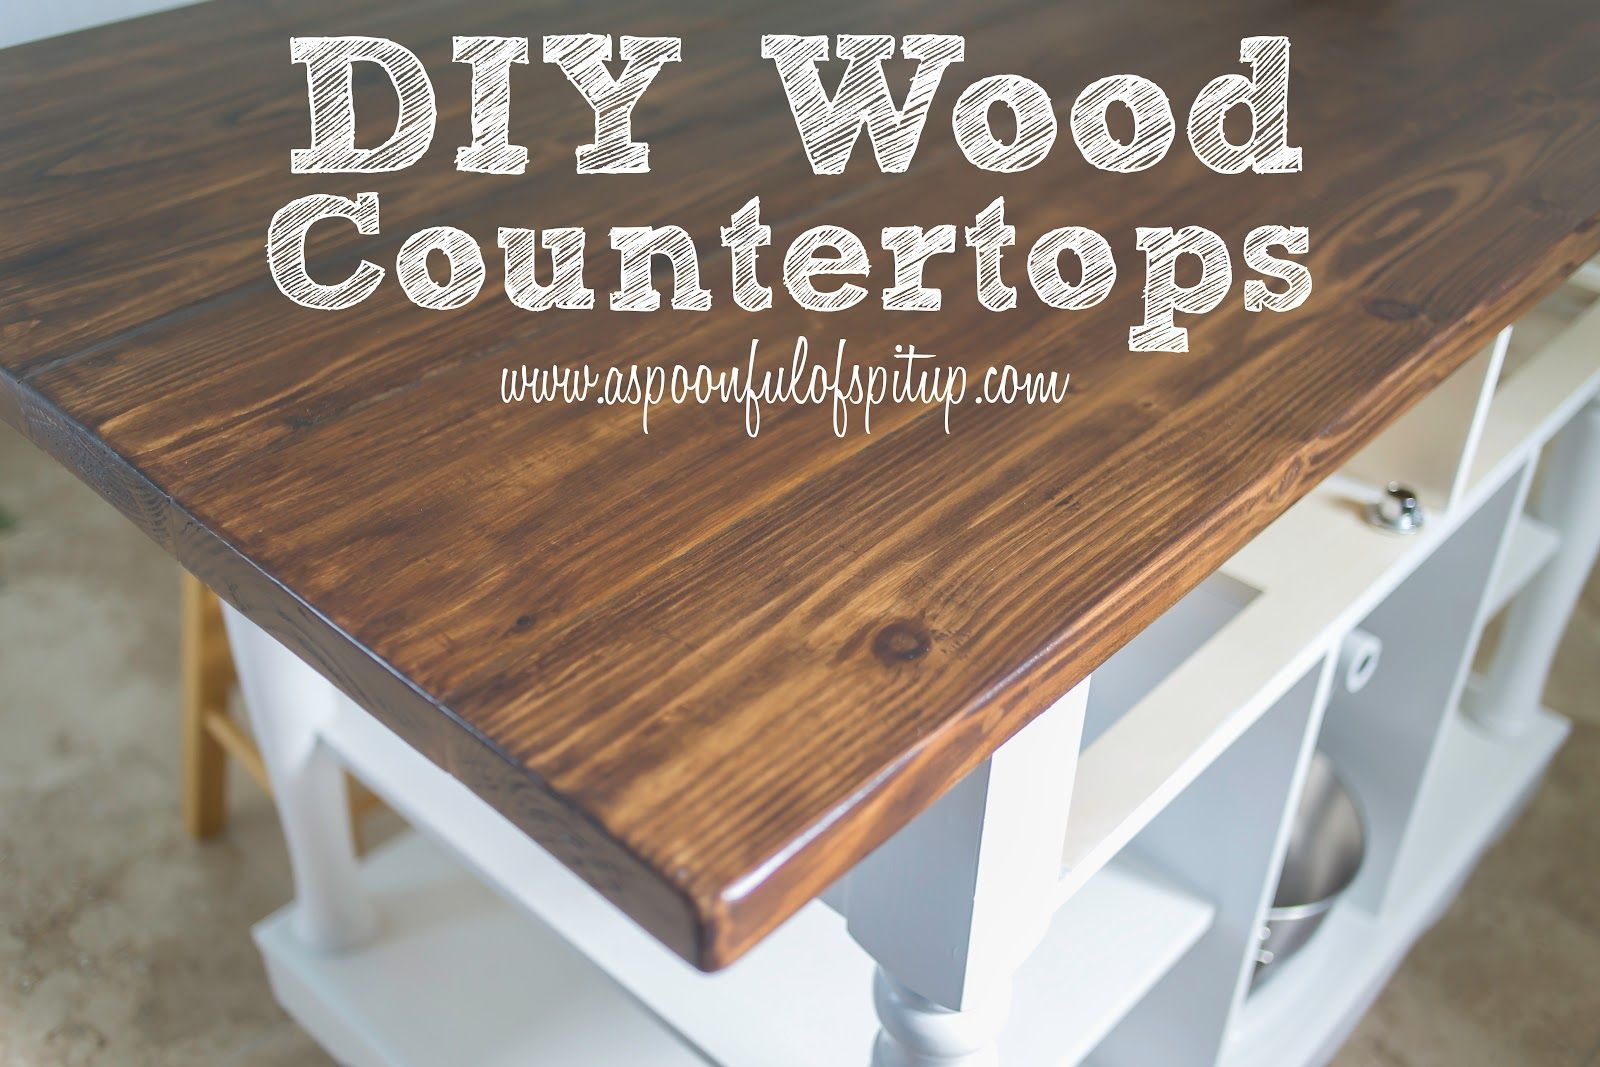 cheap kitchen countertops Charming Butcher Block Countertops For Kitchen Furniture Inspiration A Spoonful Of Spit Up DIY Wood Butcher Block Countertops